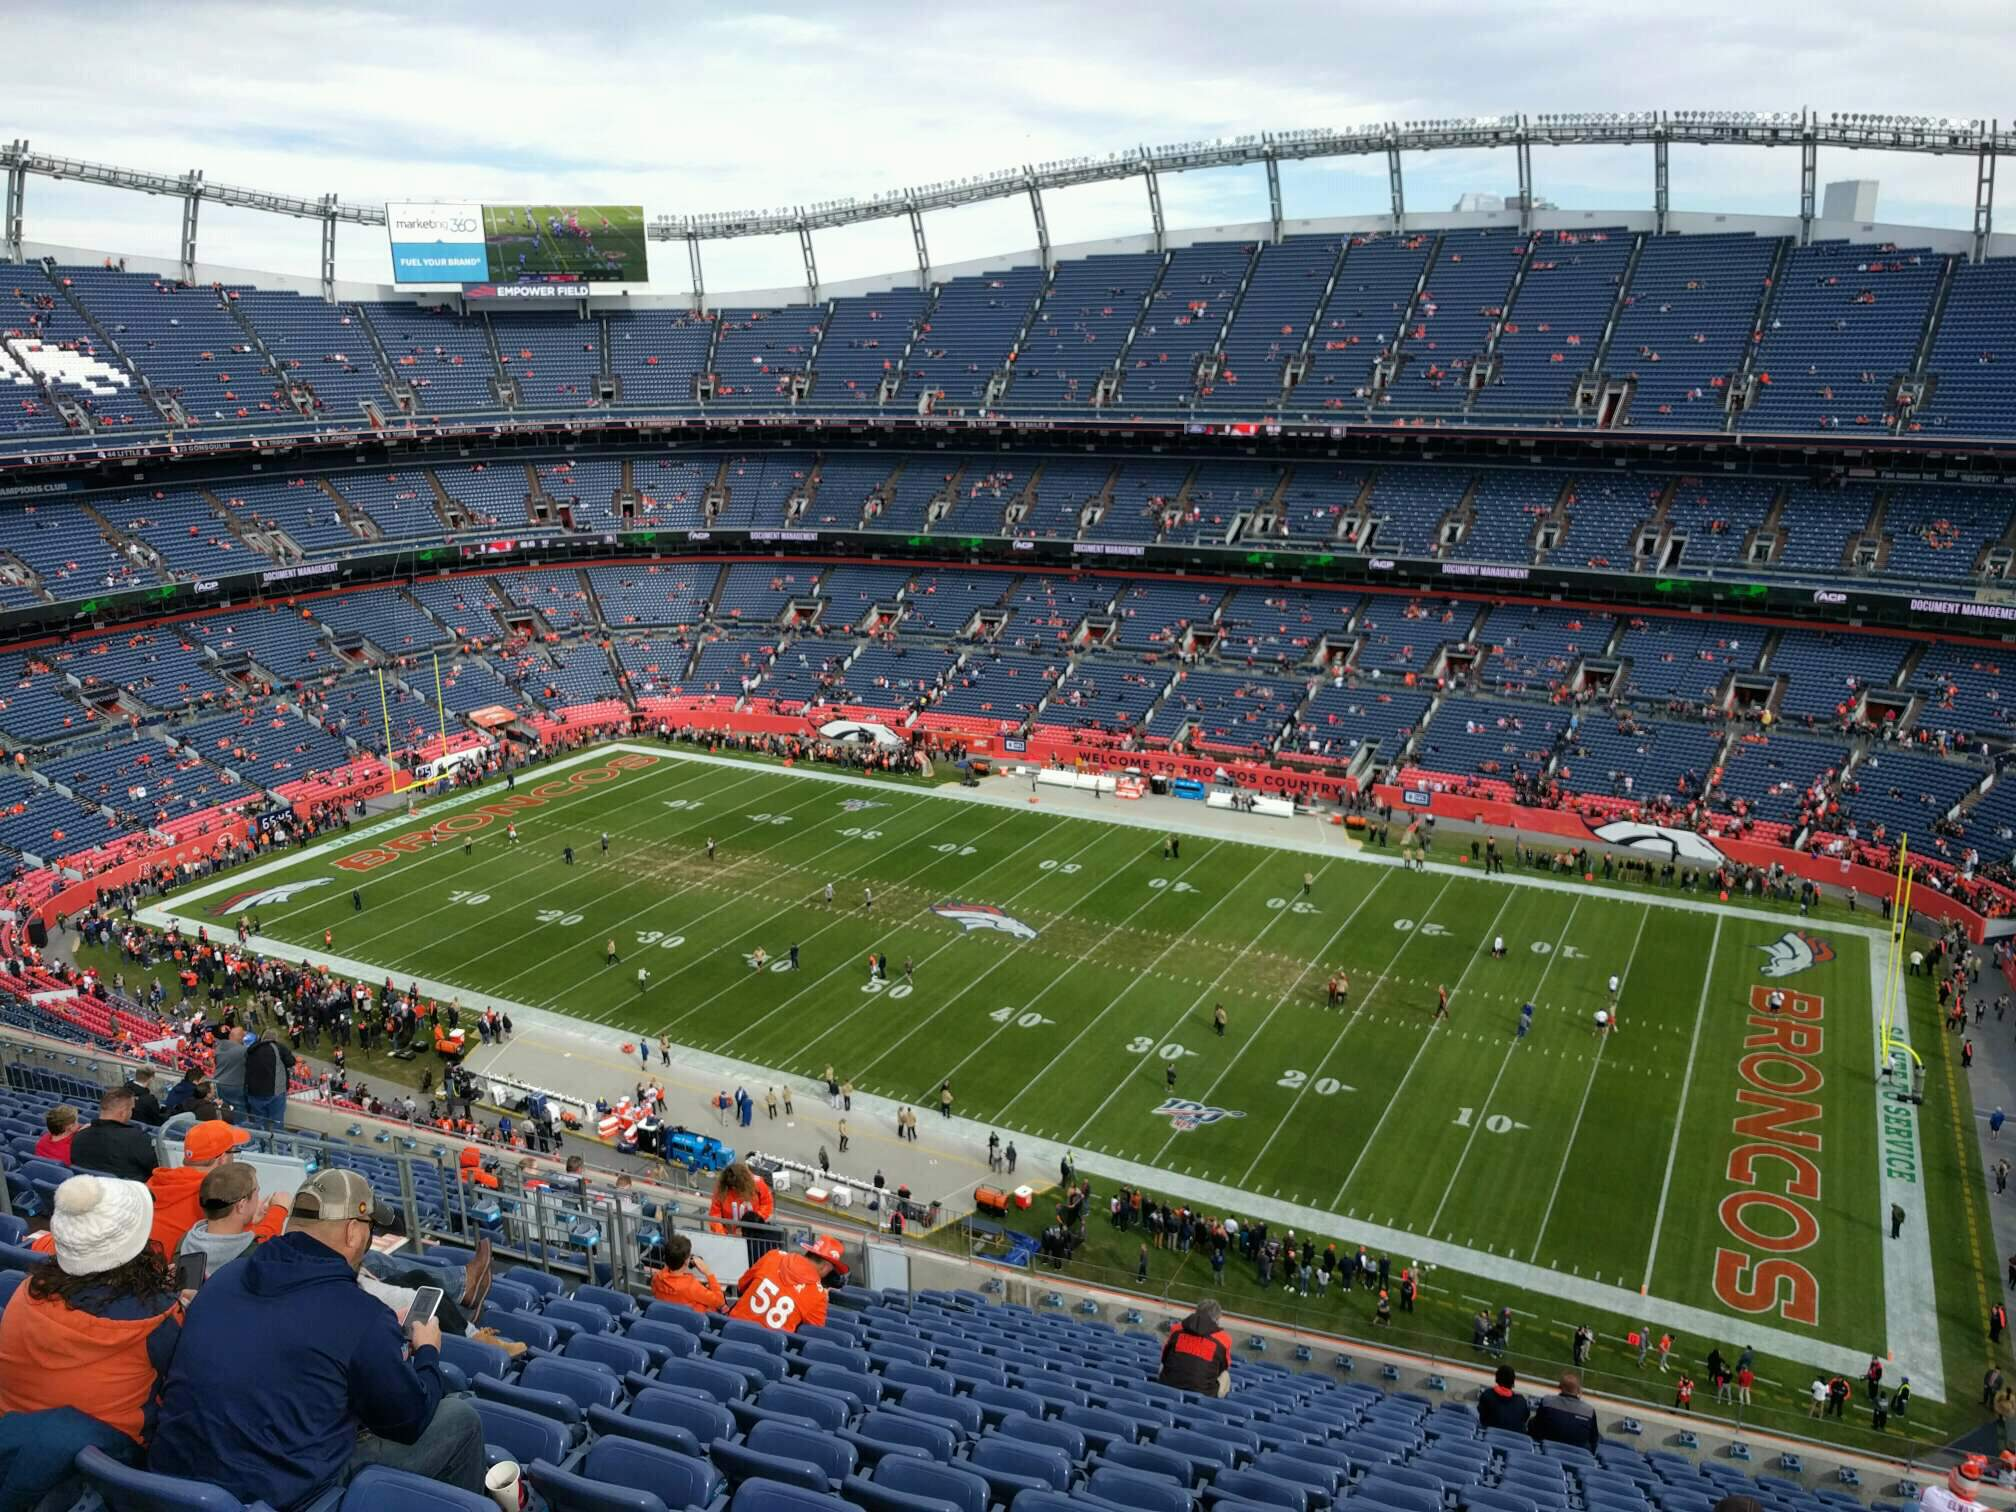 Empower Field at Mile High Stadium Section 504 Row 18 Seat 14